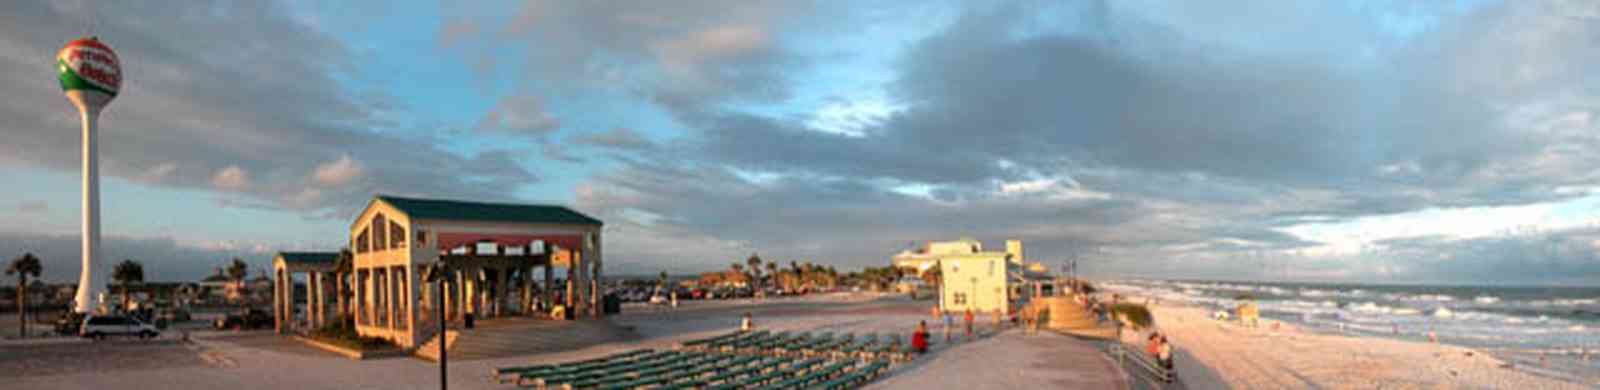 Pensacola-Beach:-Sunset_06.jpg:  pavillion, amphitheater, concert stage, benches, beach front, gulf of mexico, waves, surf, surfers, beach ball, water tower, parking lot,